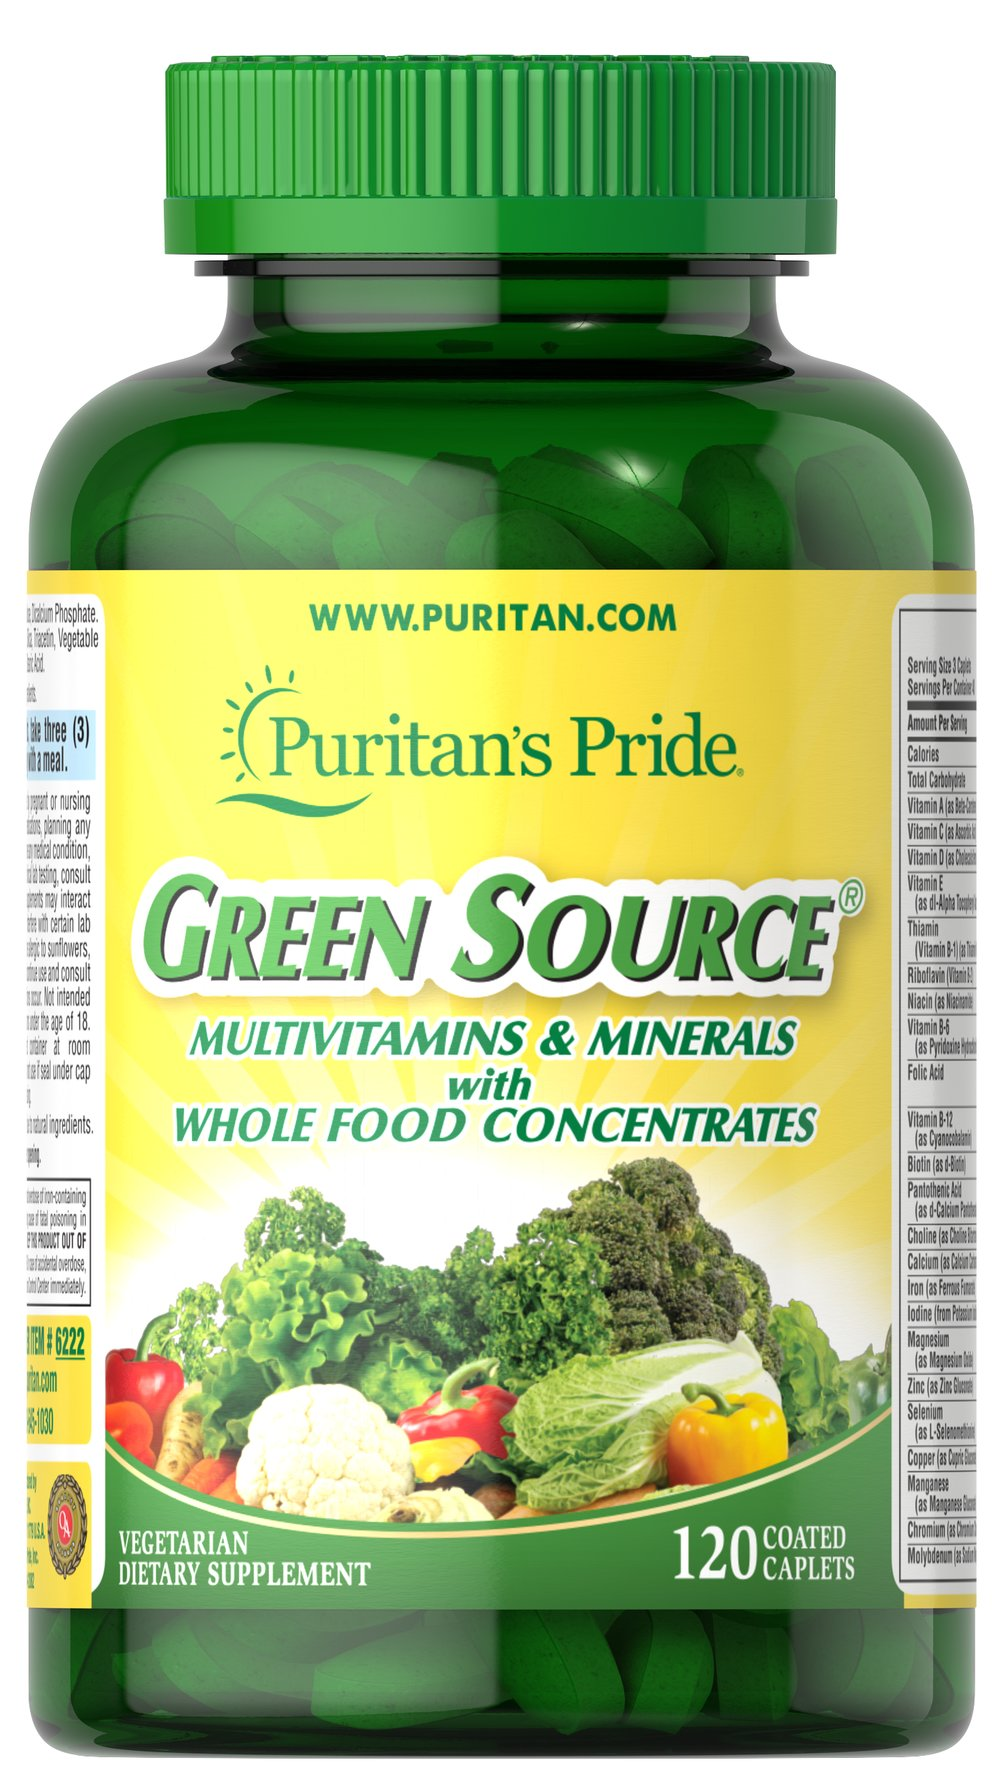 Green Source® Multivitamin & Minerals <p>This concentrated formula contains potent food source nutrients to provide essential vitamins, minerals, enzymes and amino acids. It also provides all the naturally occurring active constituents of whole foods.</p> 120 Caplets  $32.99